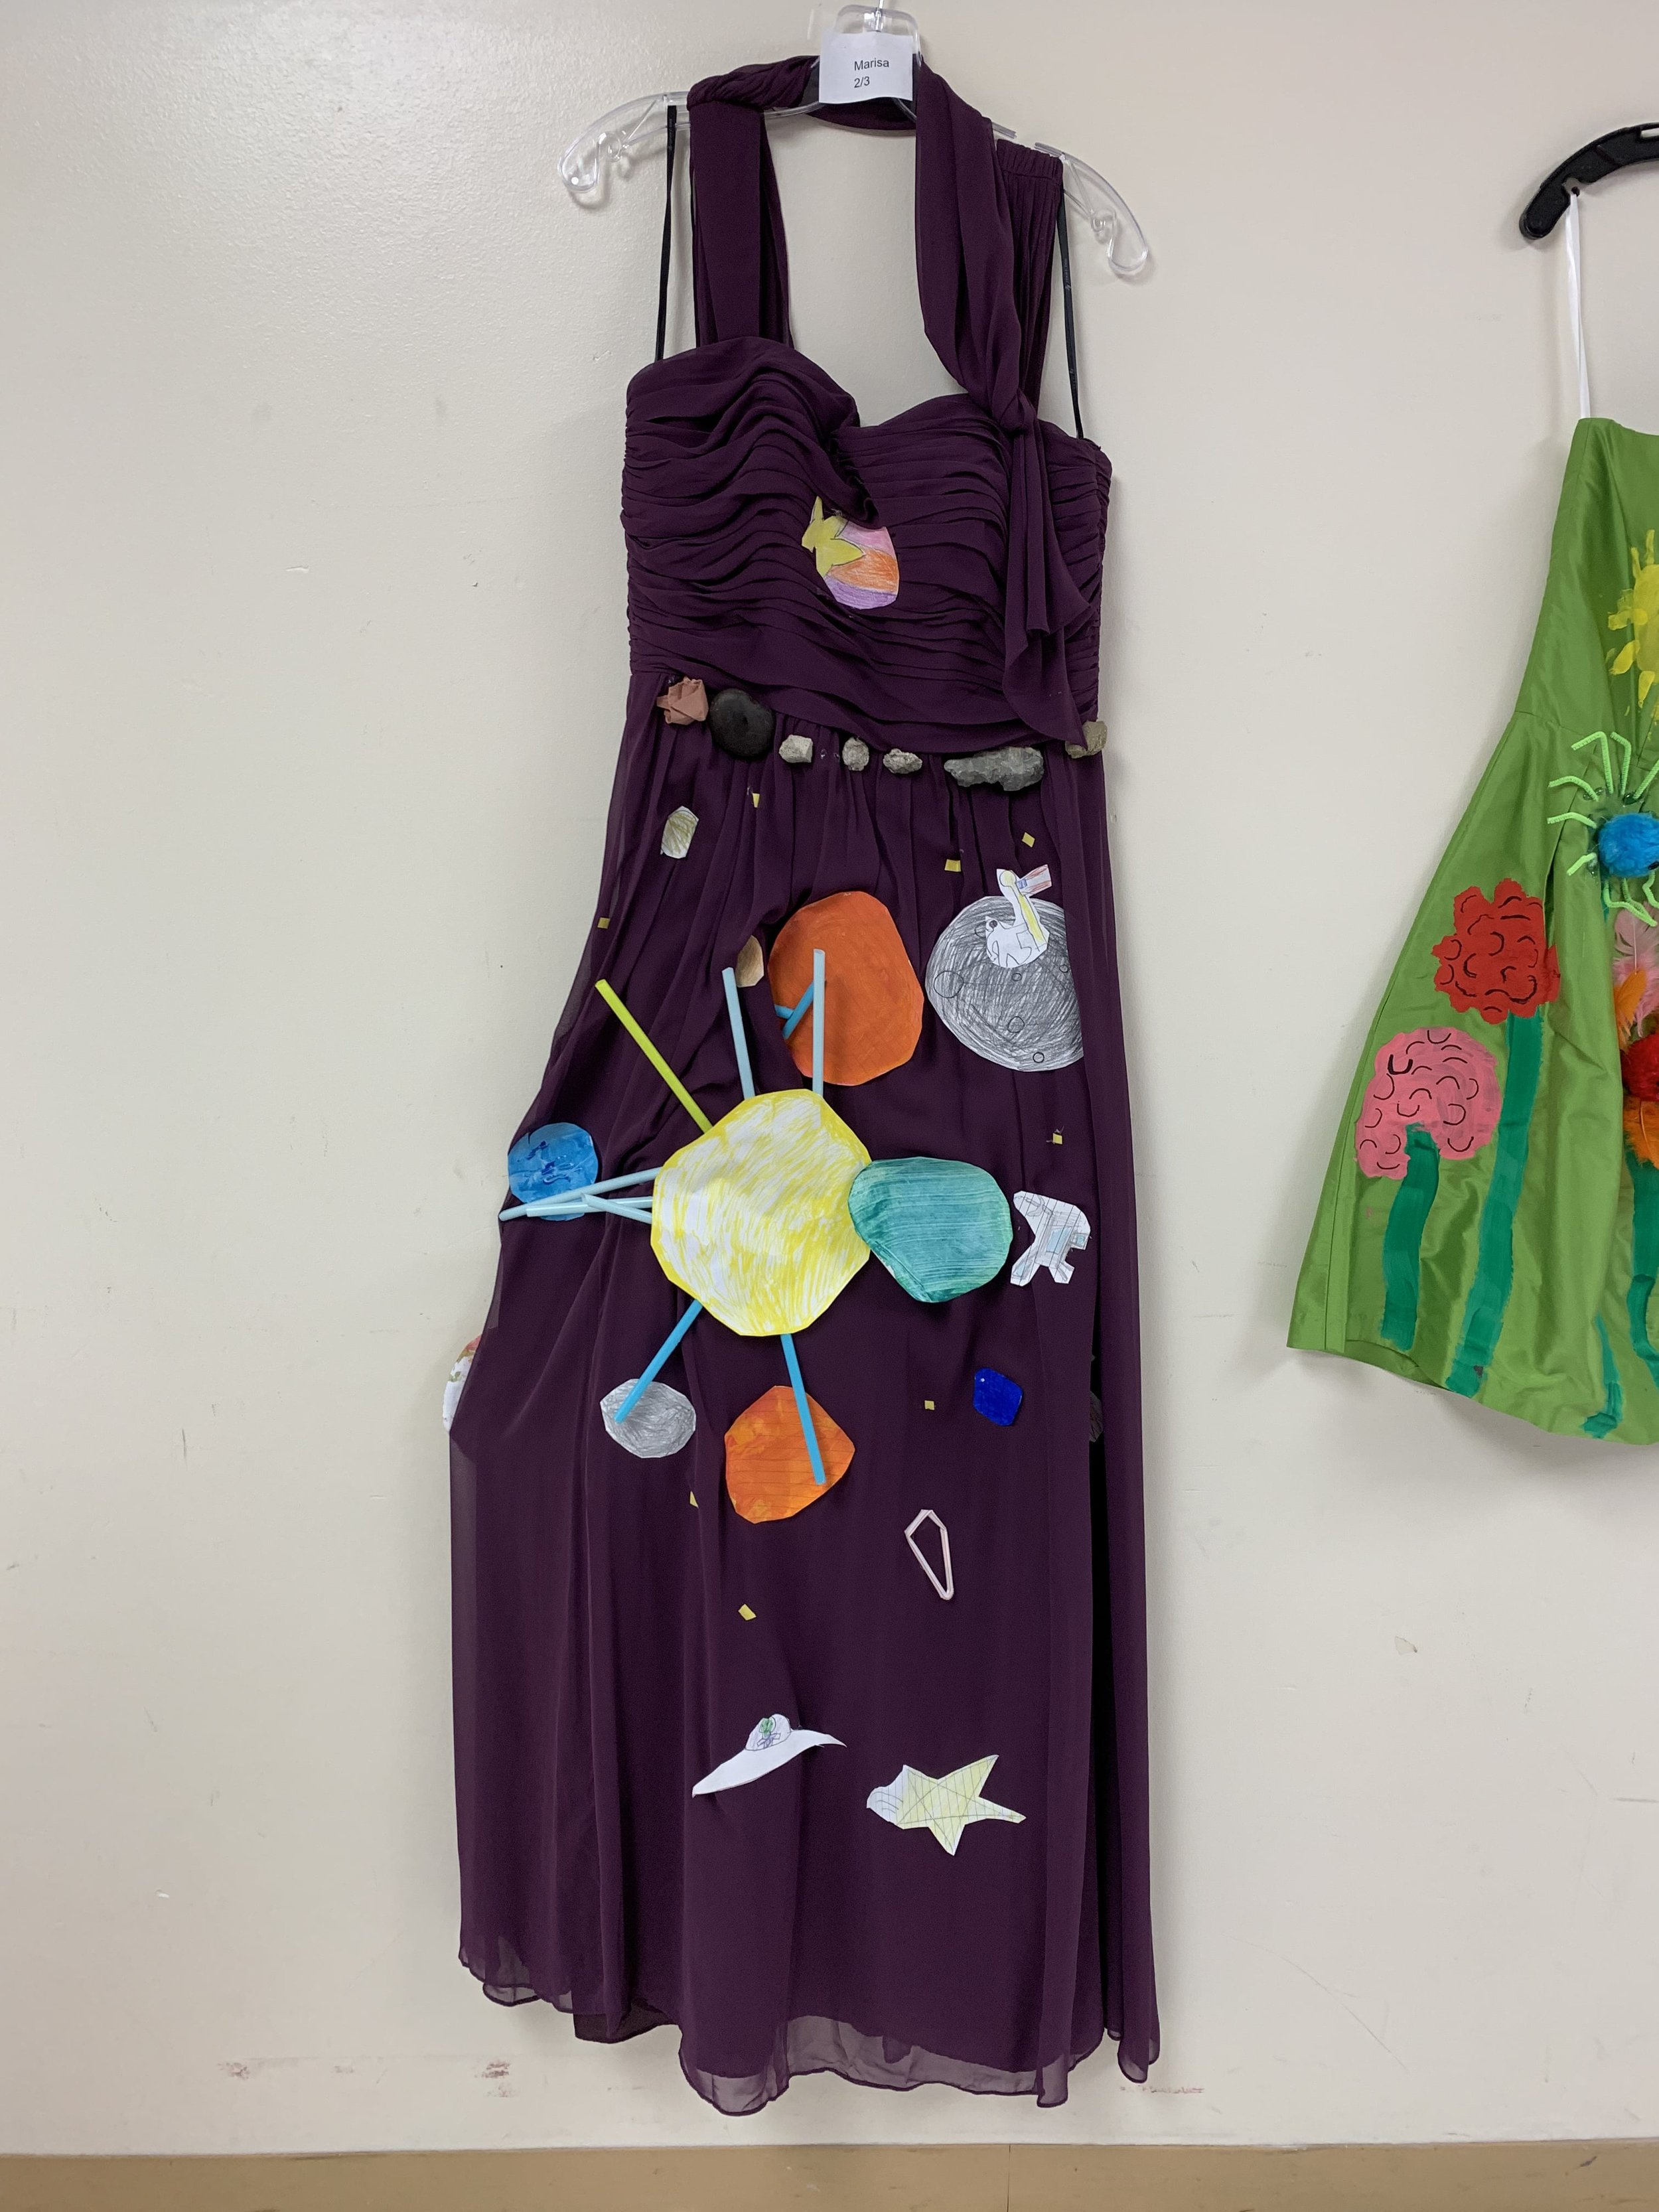 Elementary schoolers decorate dresses in honor of Ann Cole Lowe